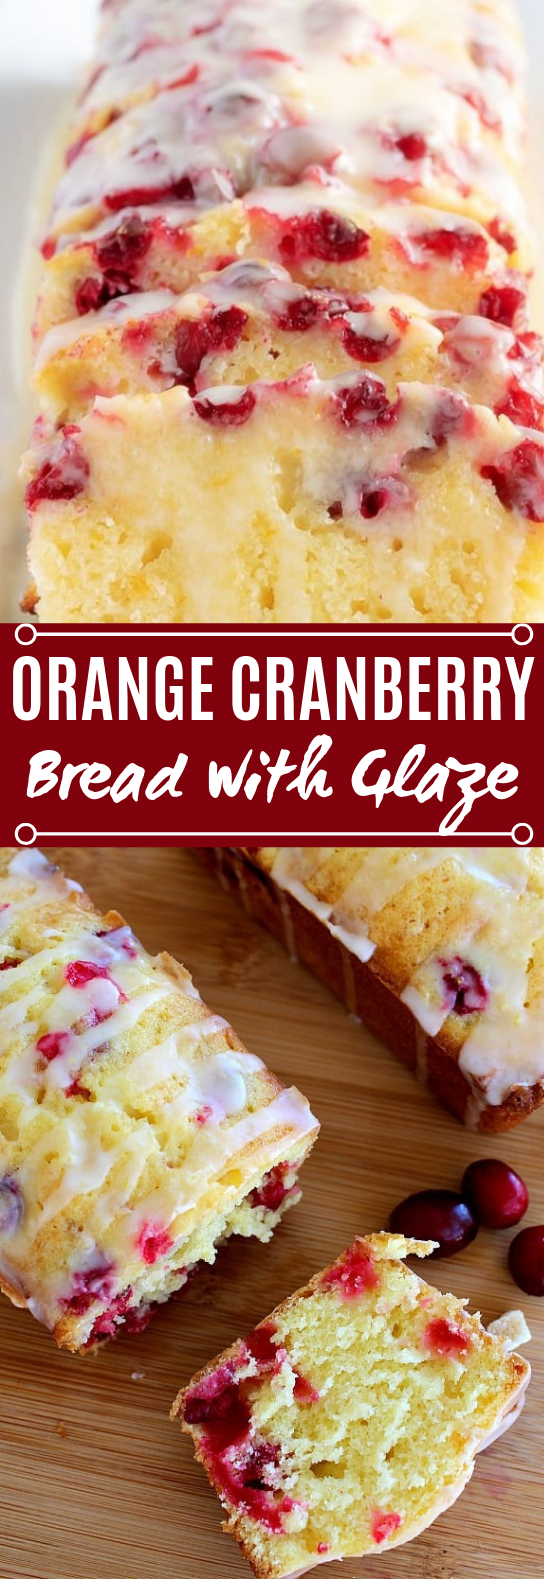 Orange Cranberry Bread with Glaze #cake #desserts